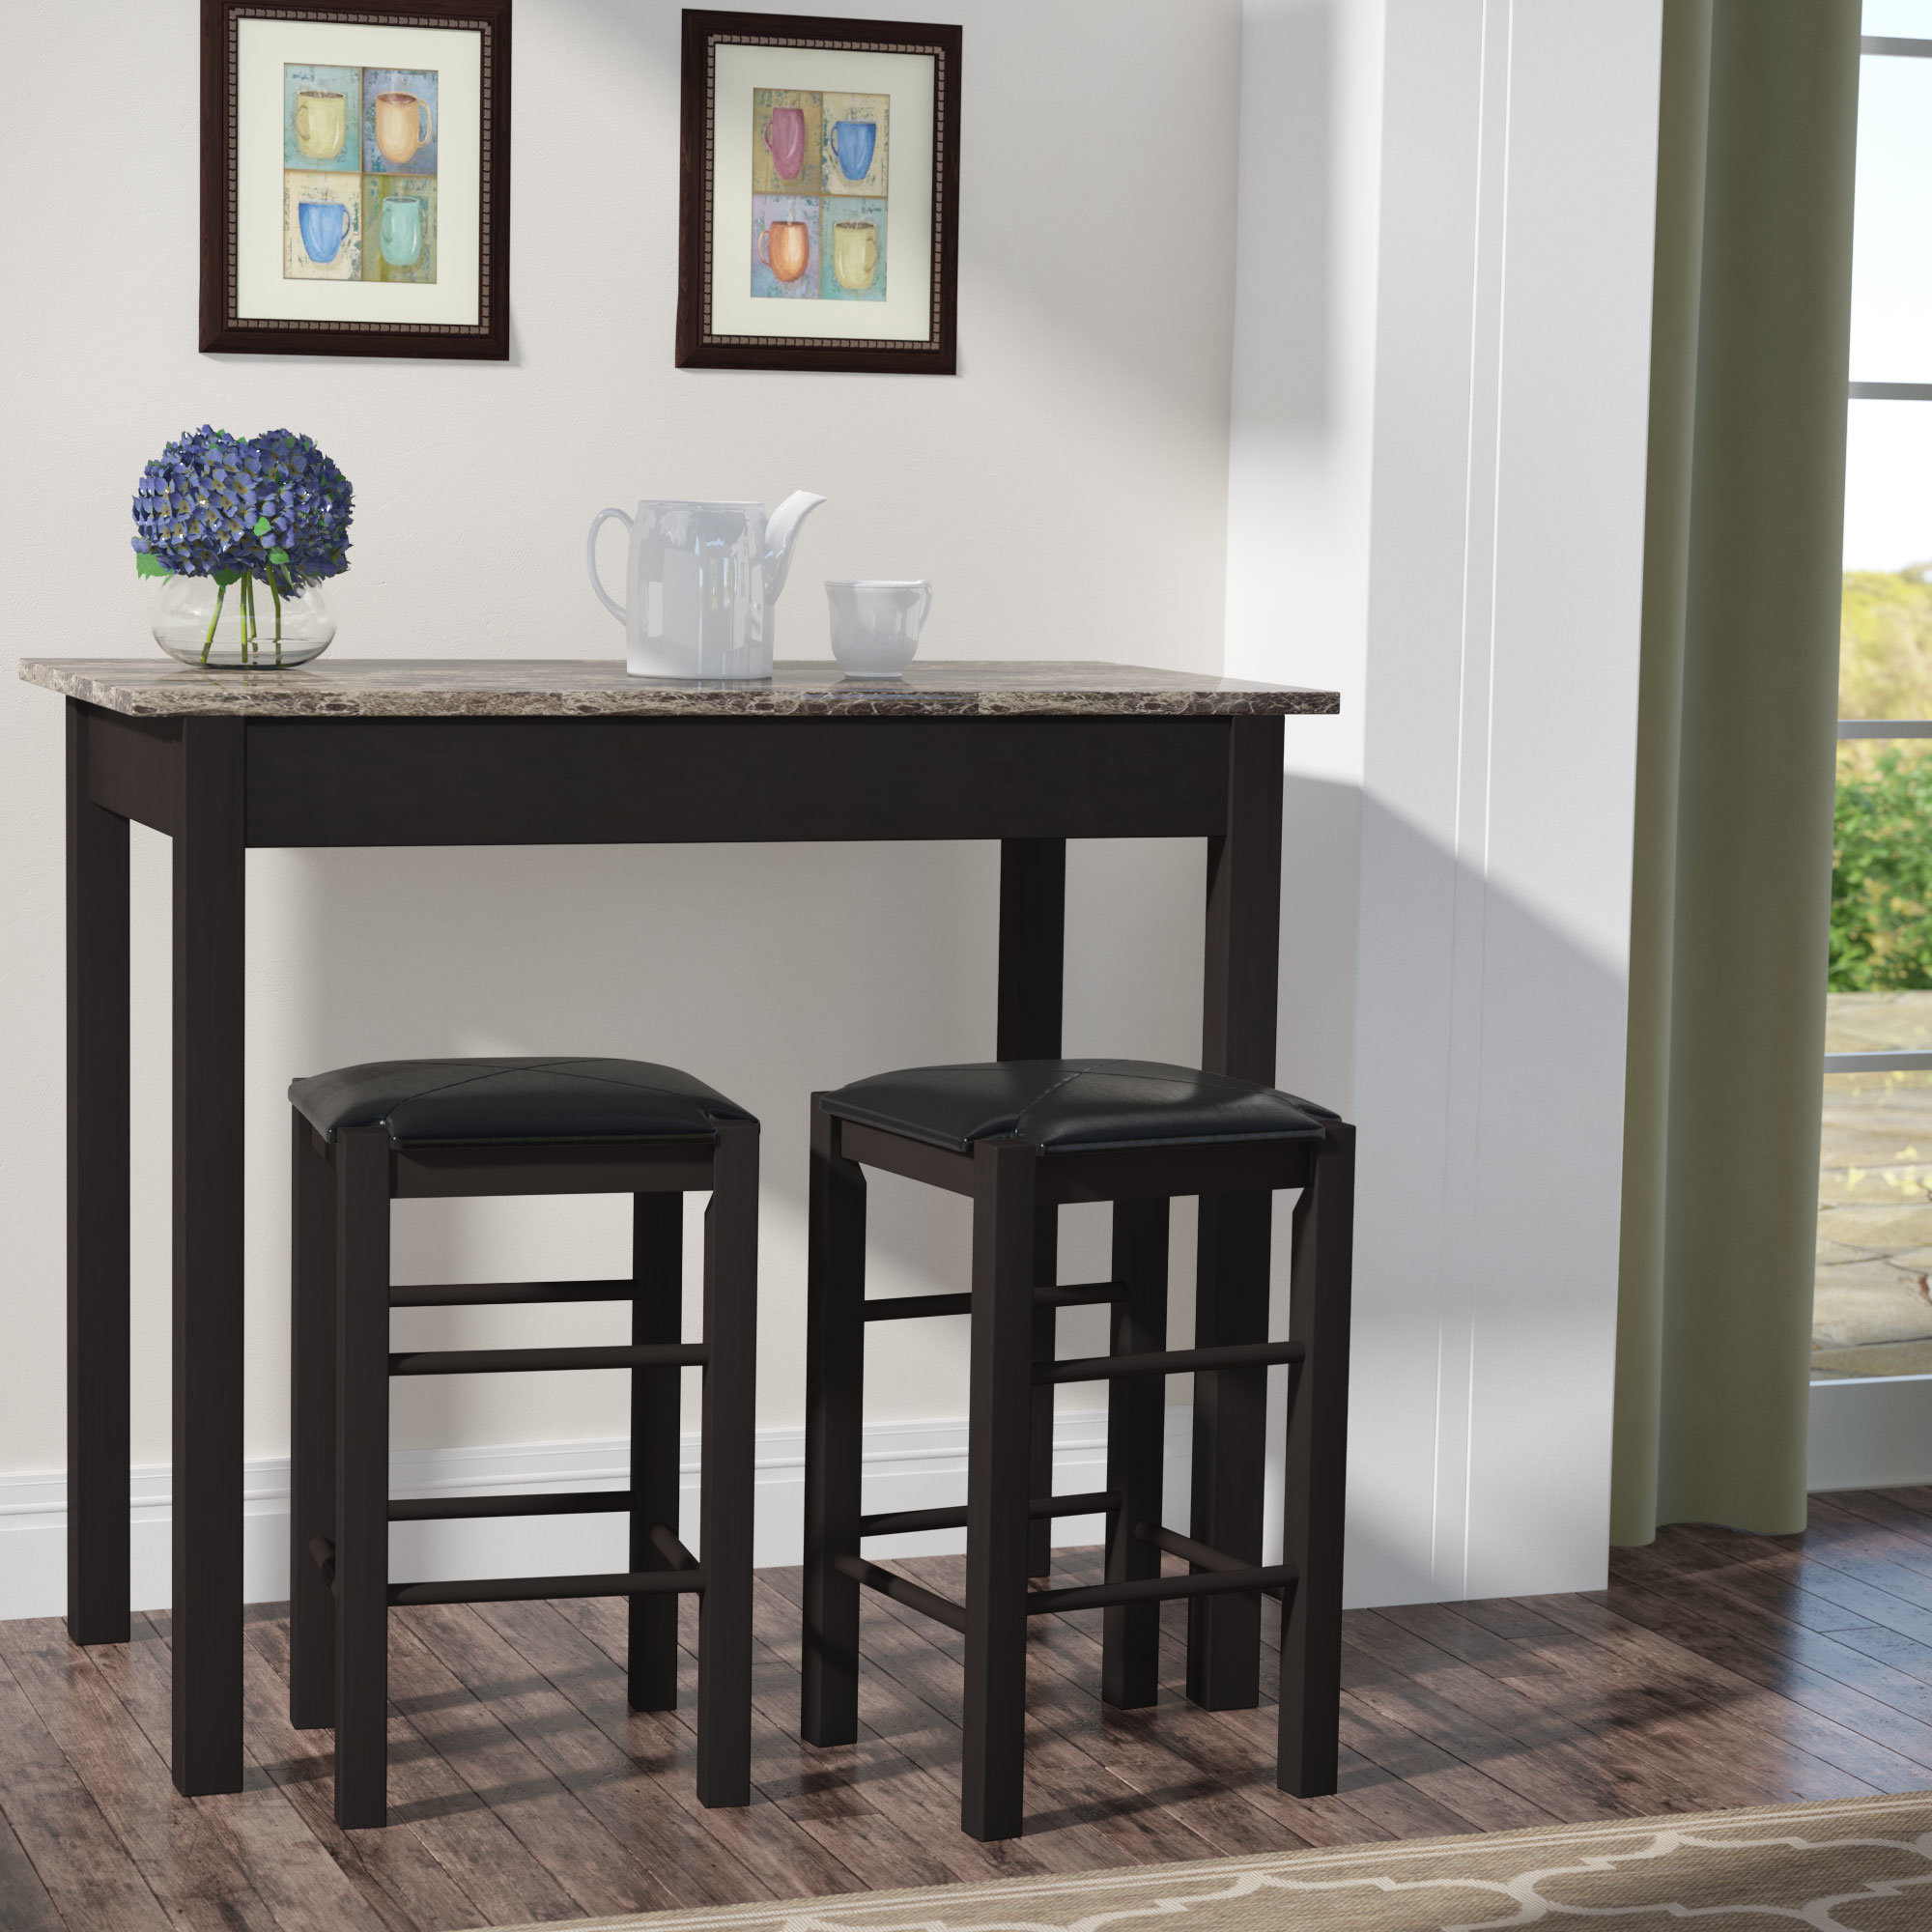 Miskell 3 Piece Dining Sets Regarding Current Winston Porter Sheetz 3 Piece Counter Height Dining Set & Reviews (View 13 of 20)